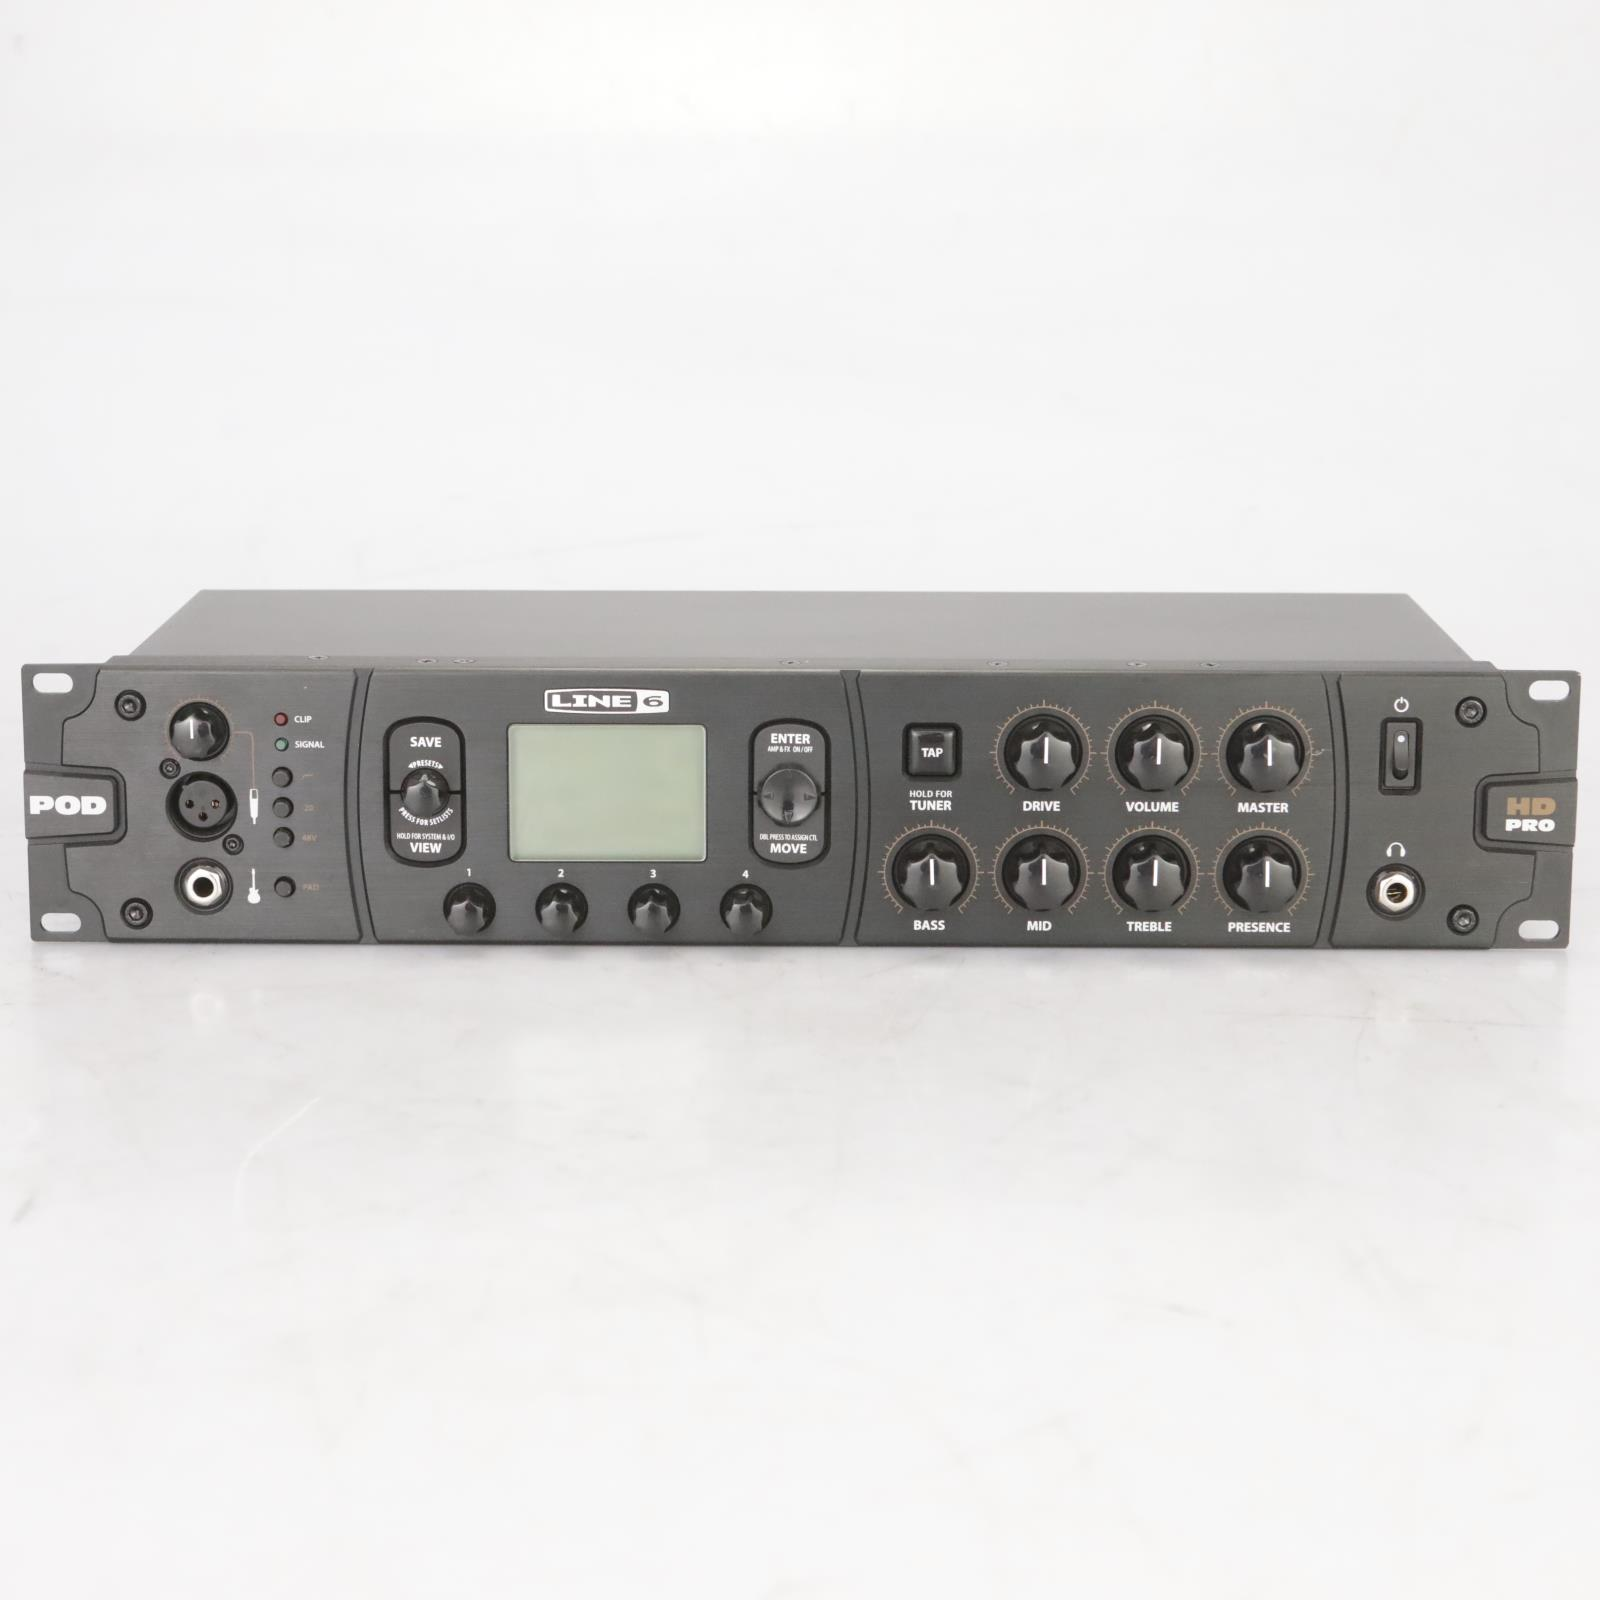 Line 6 POD HD Pro Amp Modeler Multi-Effects Processor Owned by Garbage #38607